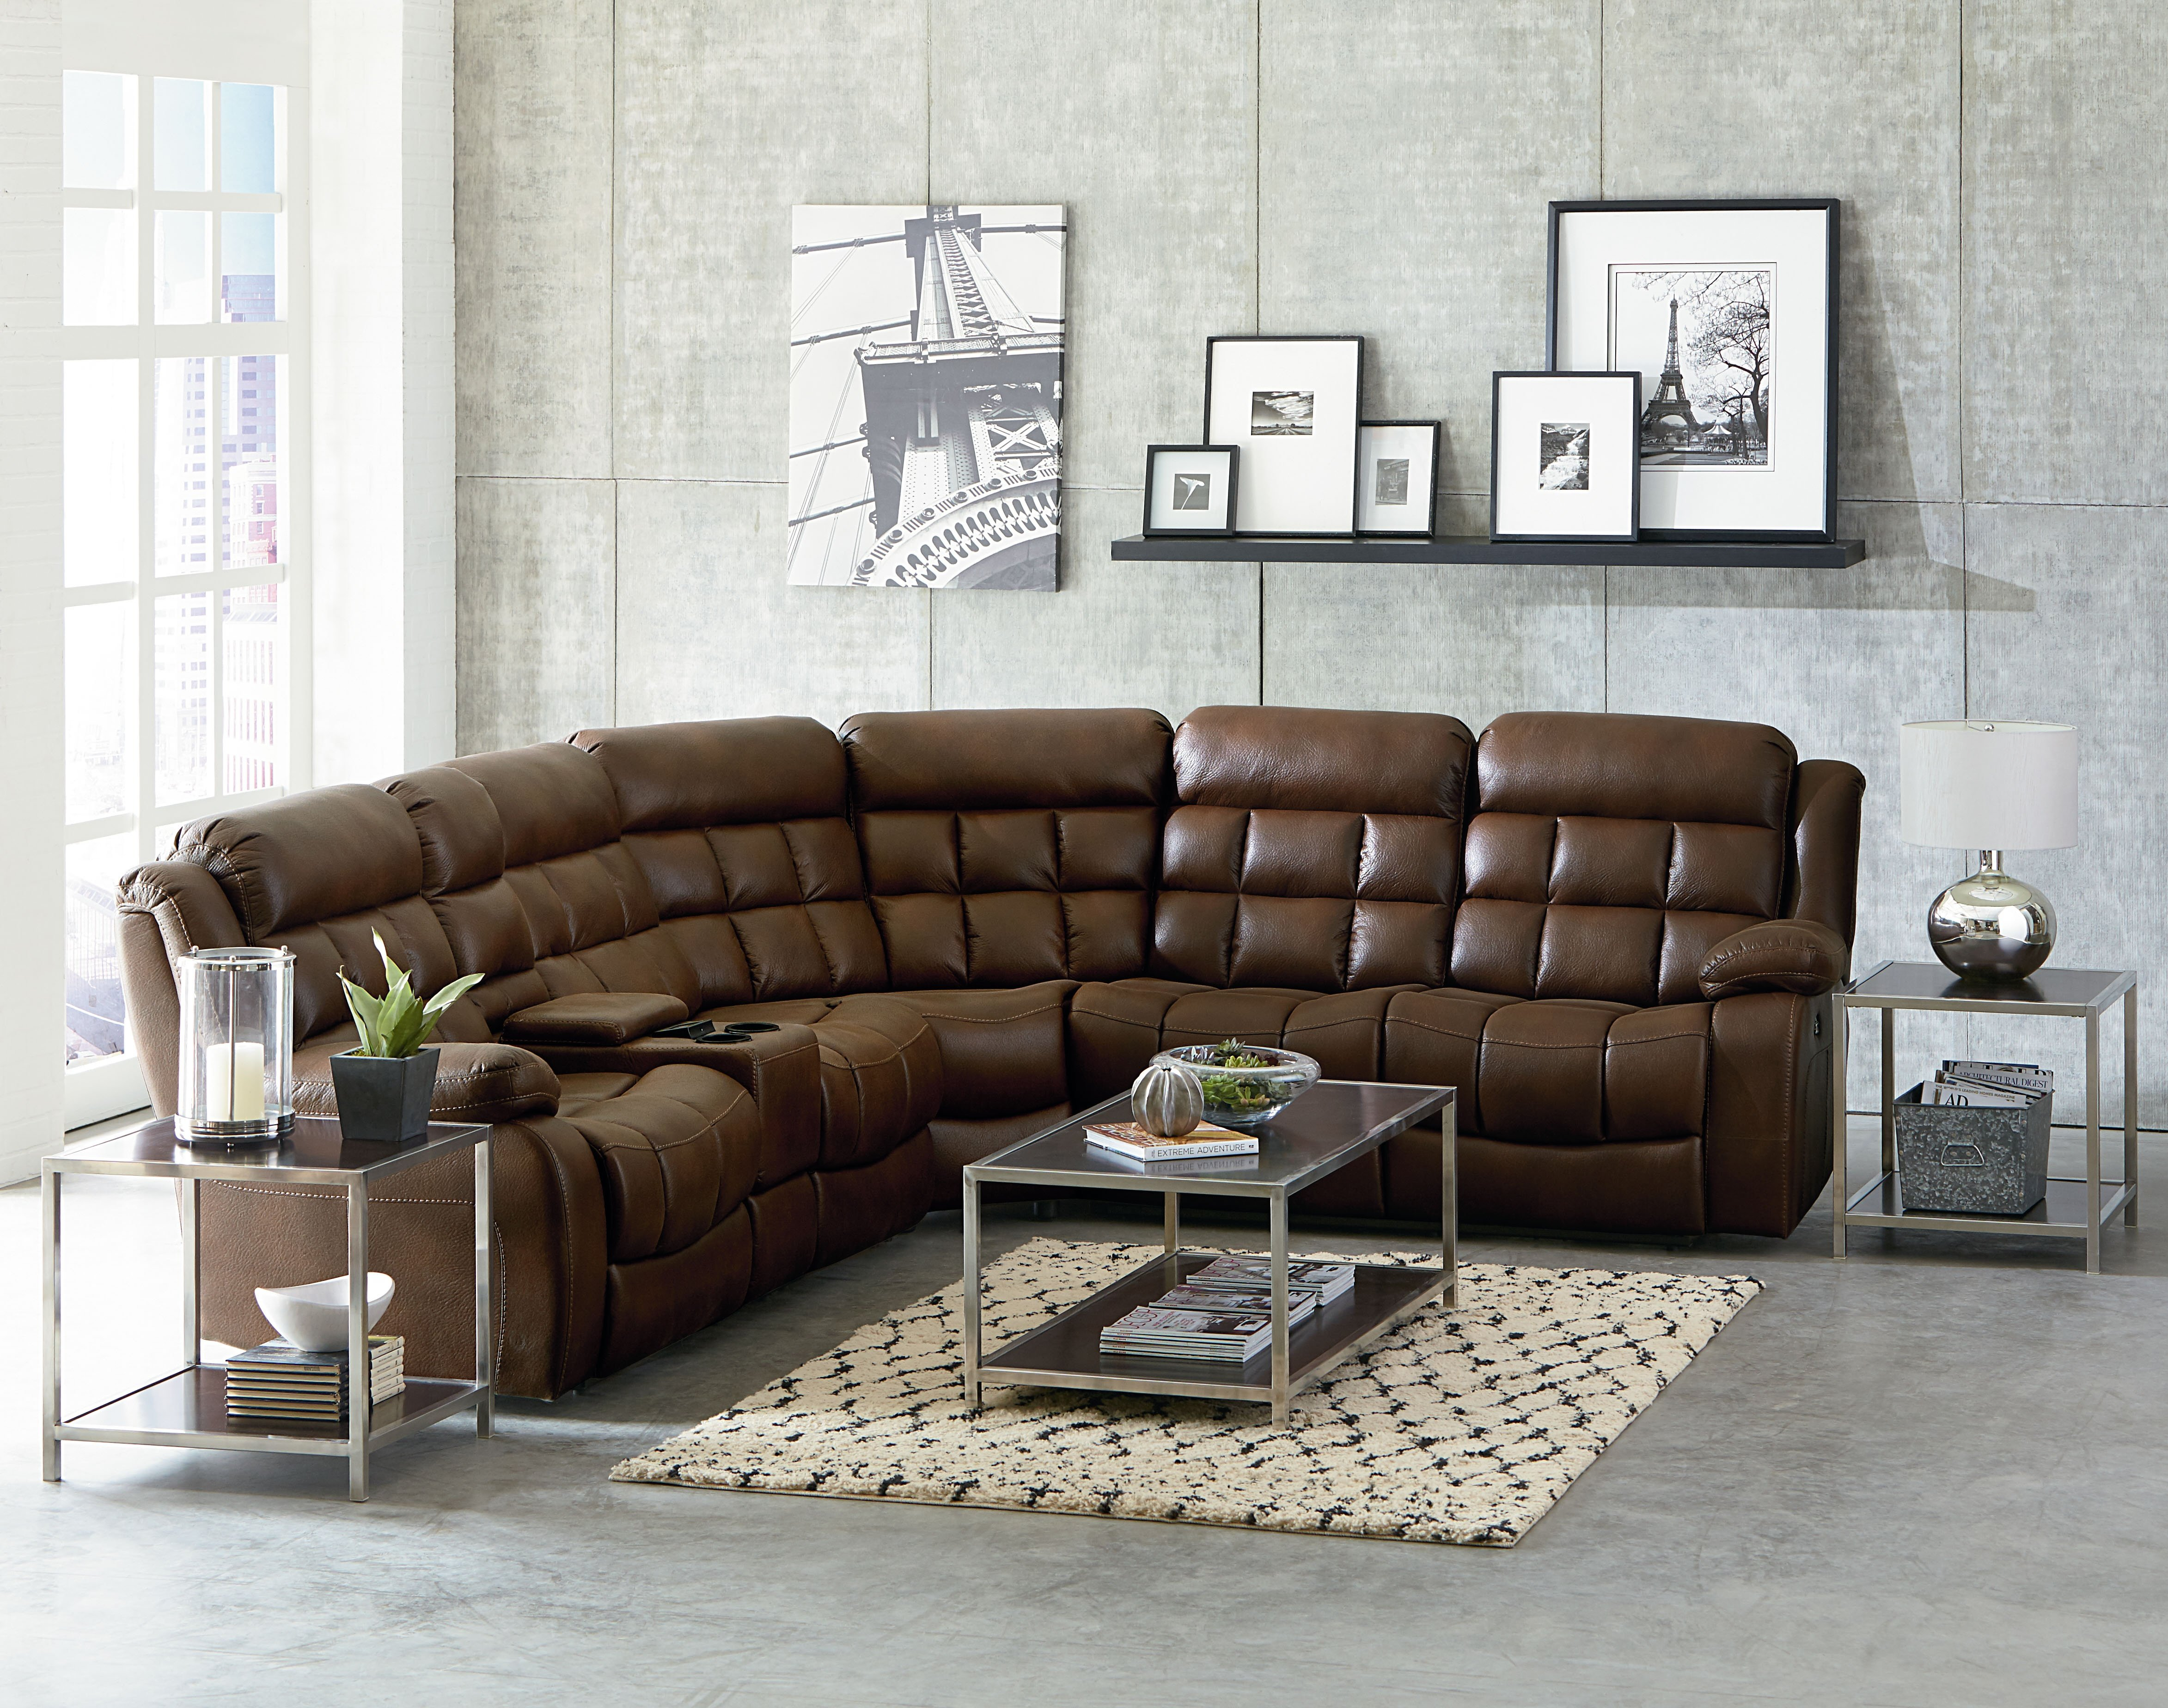 Destination Power Reclining Sectional Includes 3 Power Recliners